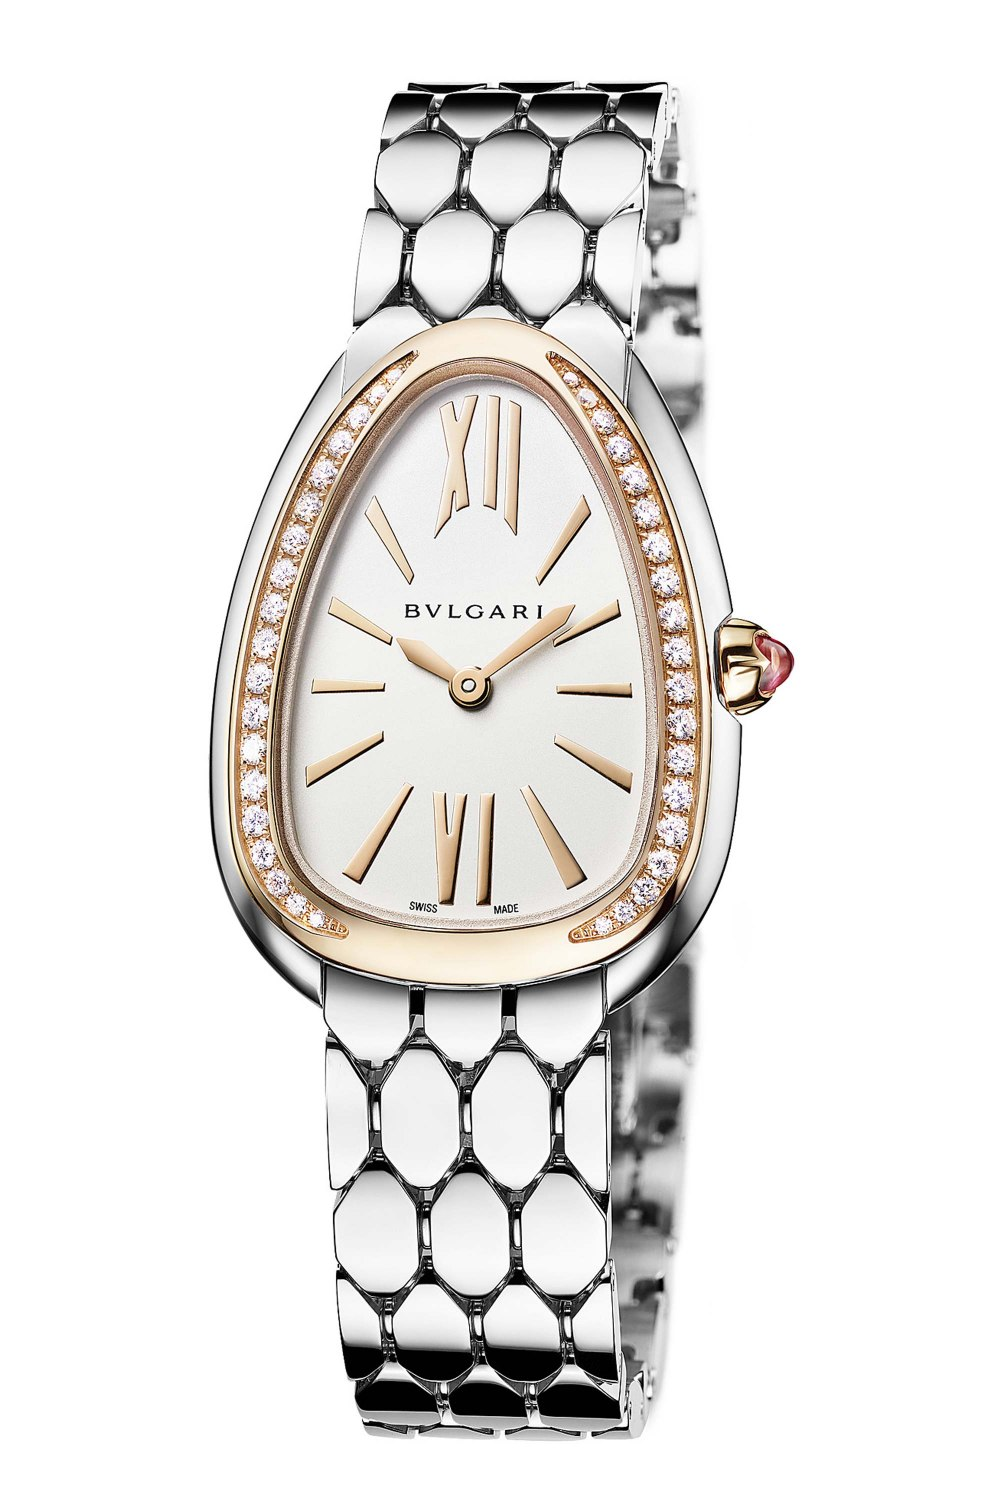 BULGARI Serpenti Seduttori Stainless Steel Rose Gold Diamonds 103143